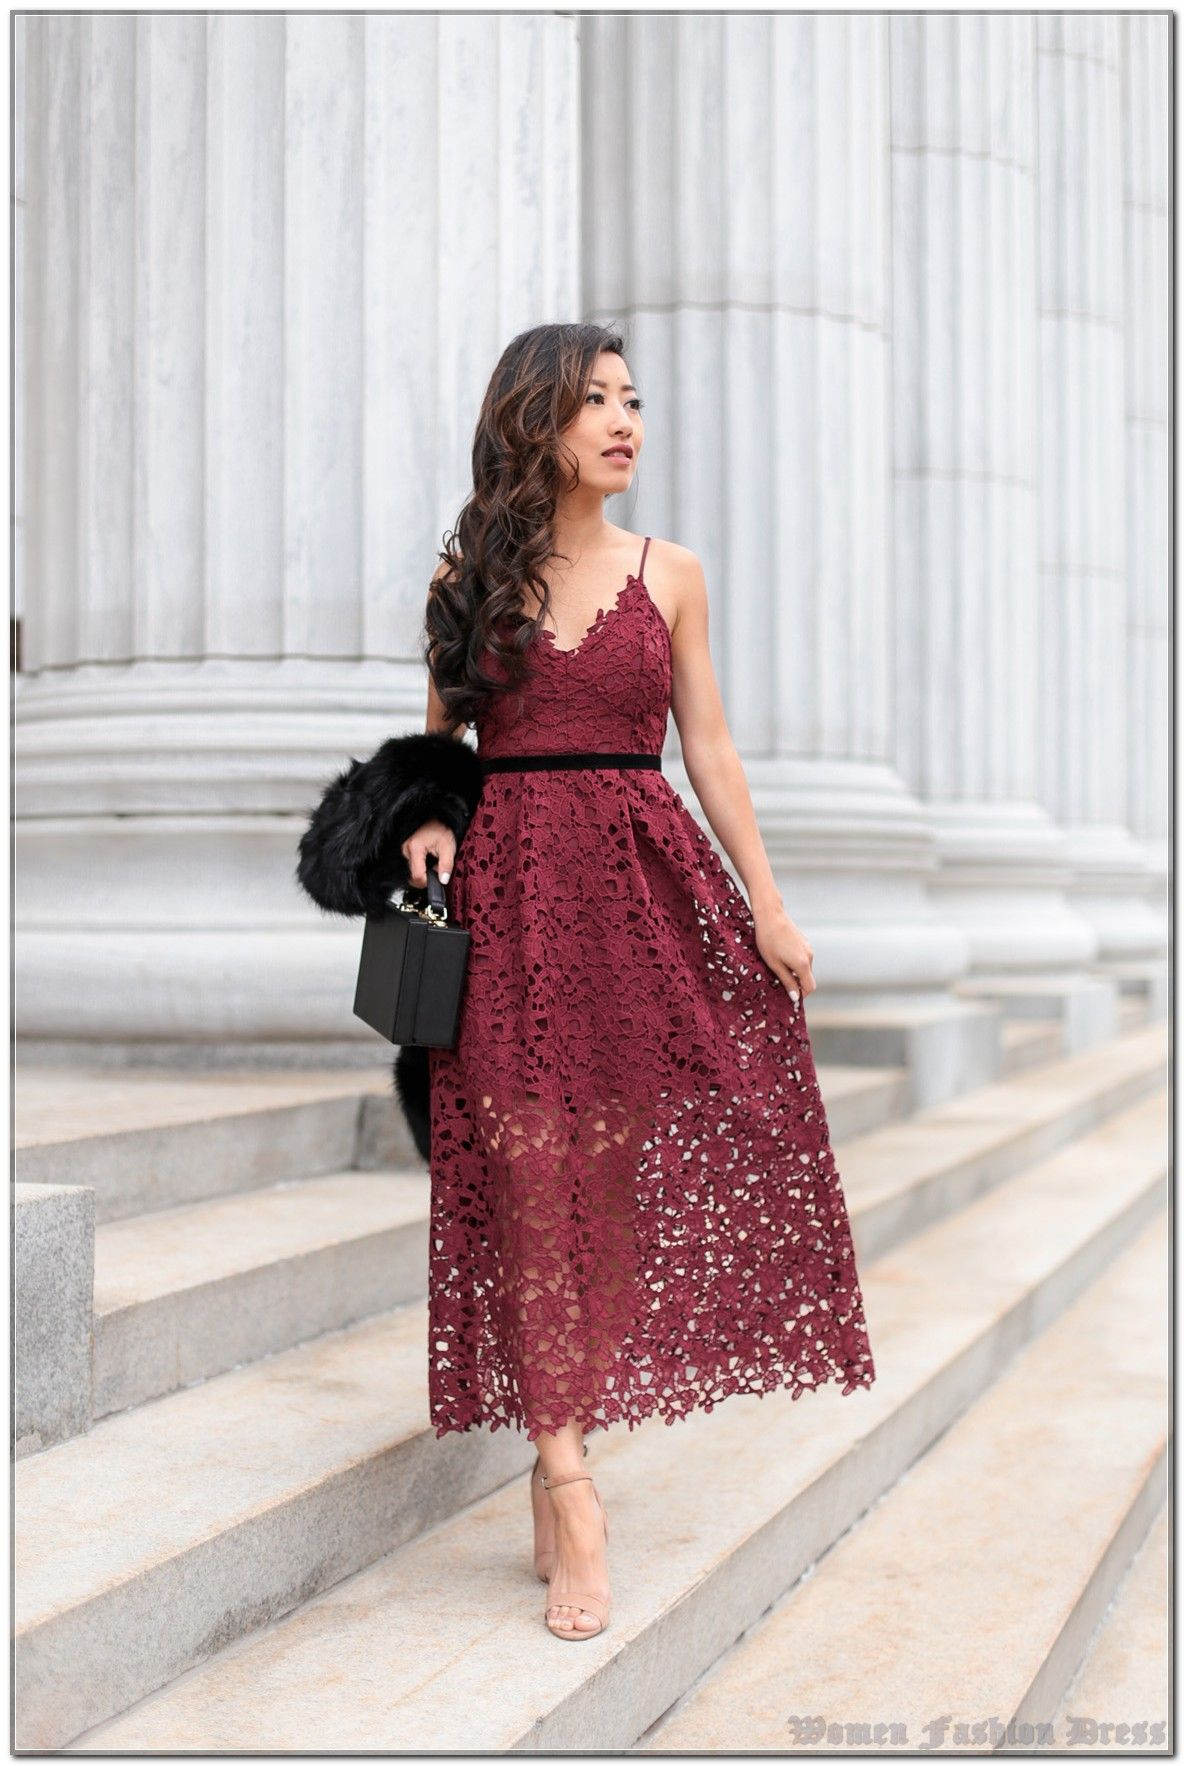 What Is Women Fashion Dress and How Does It Work?